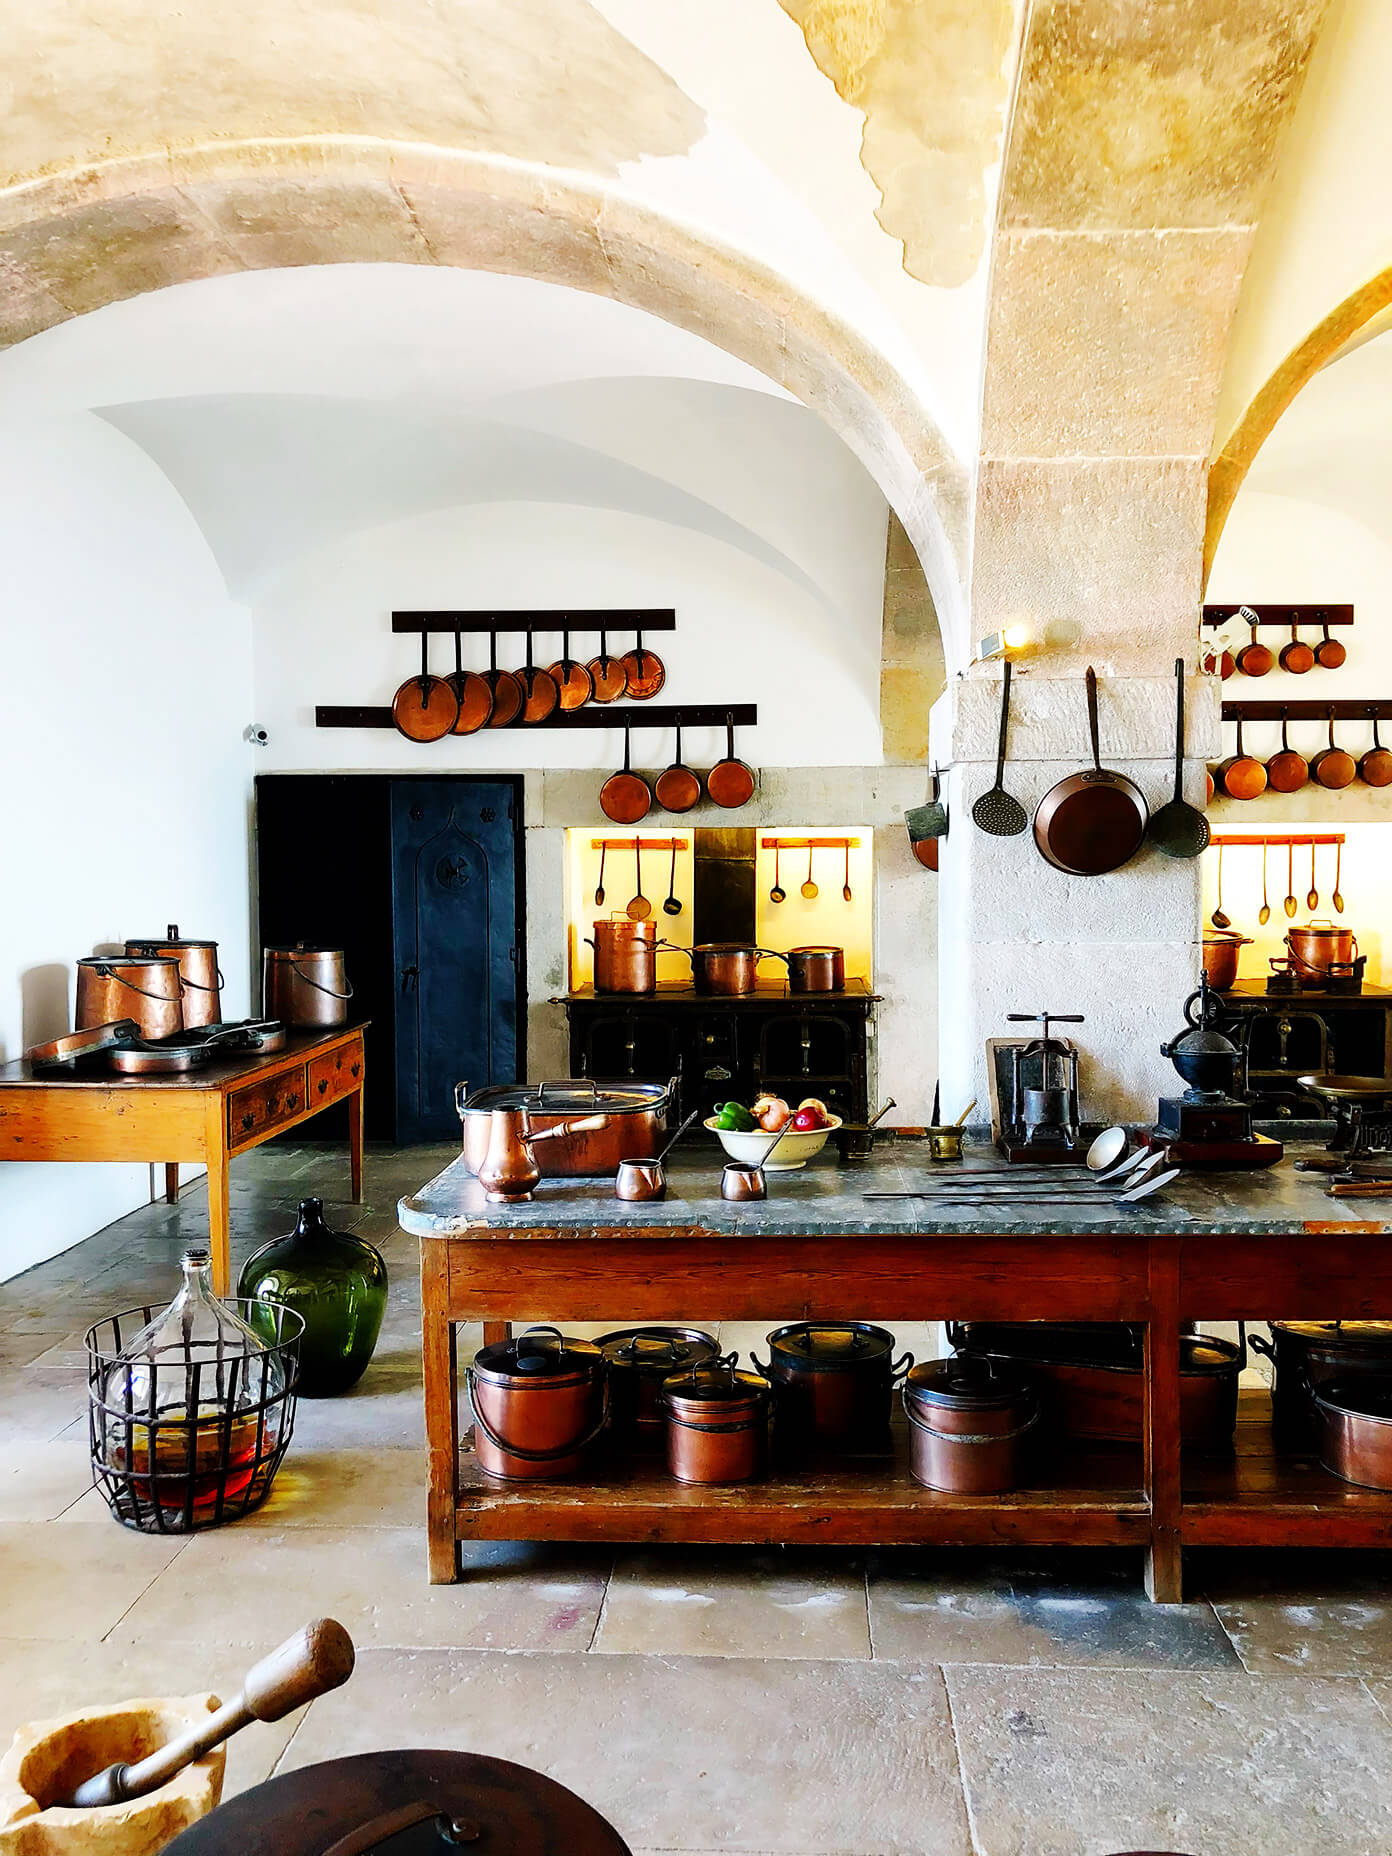 Pena Palace Kitchen in Portugal